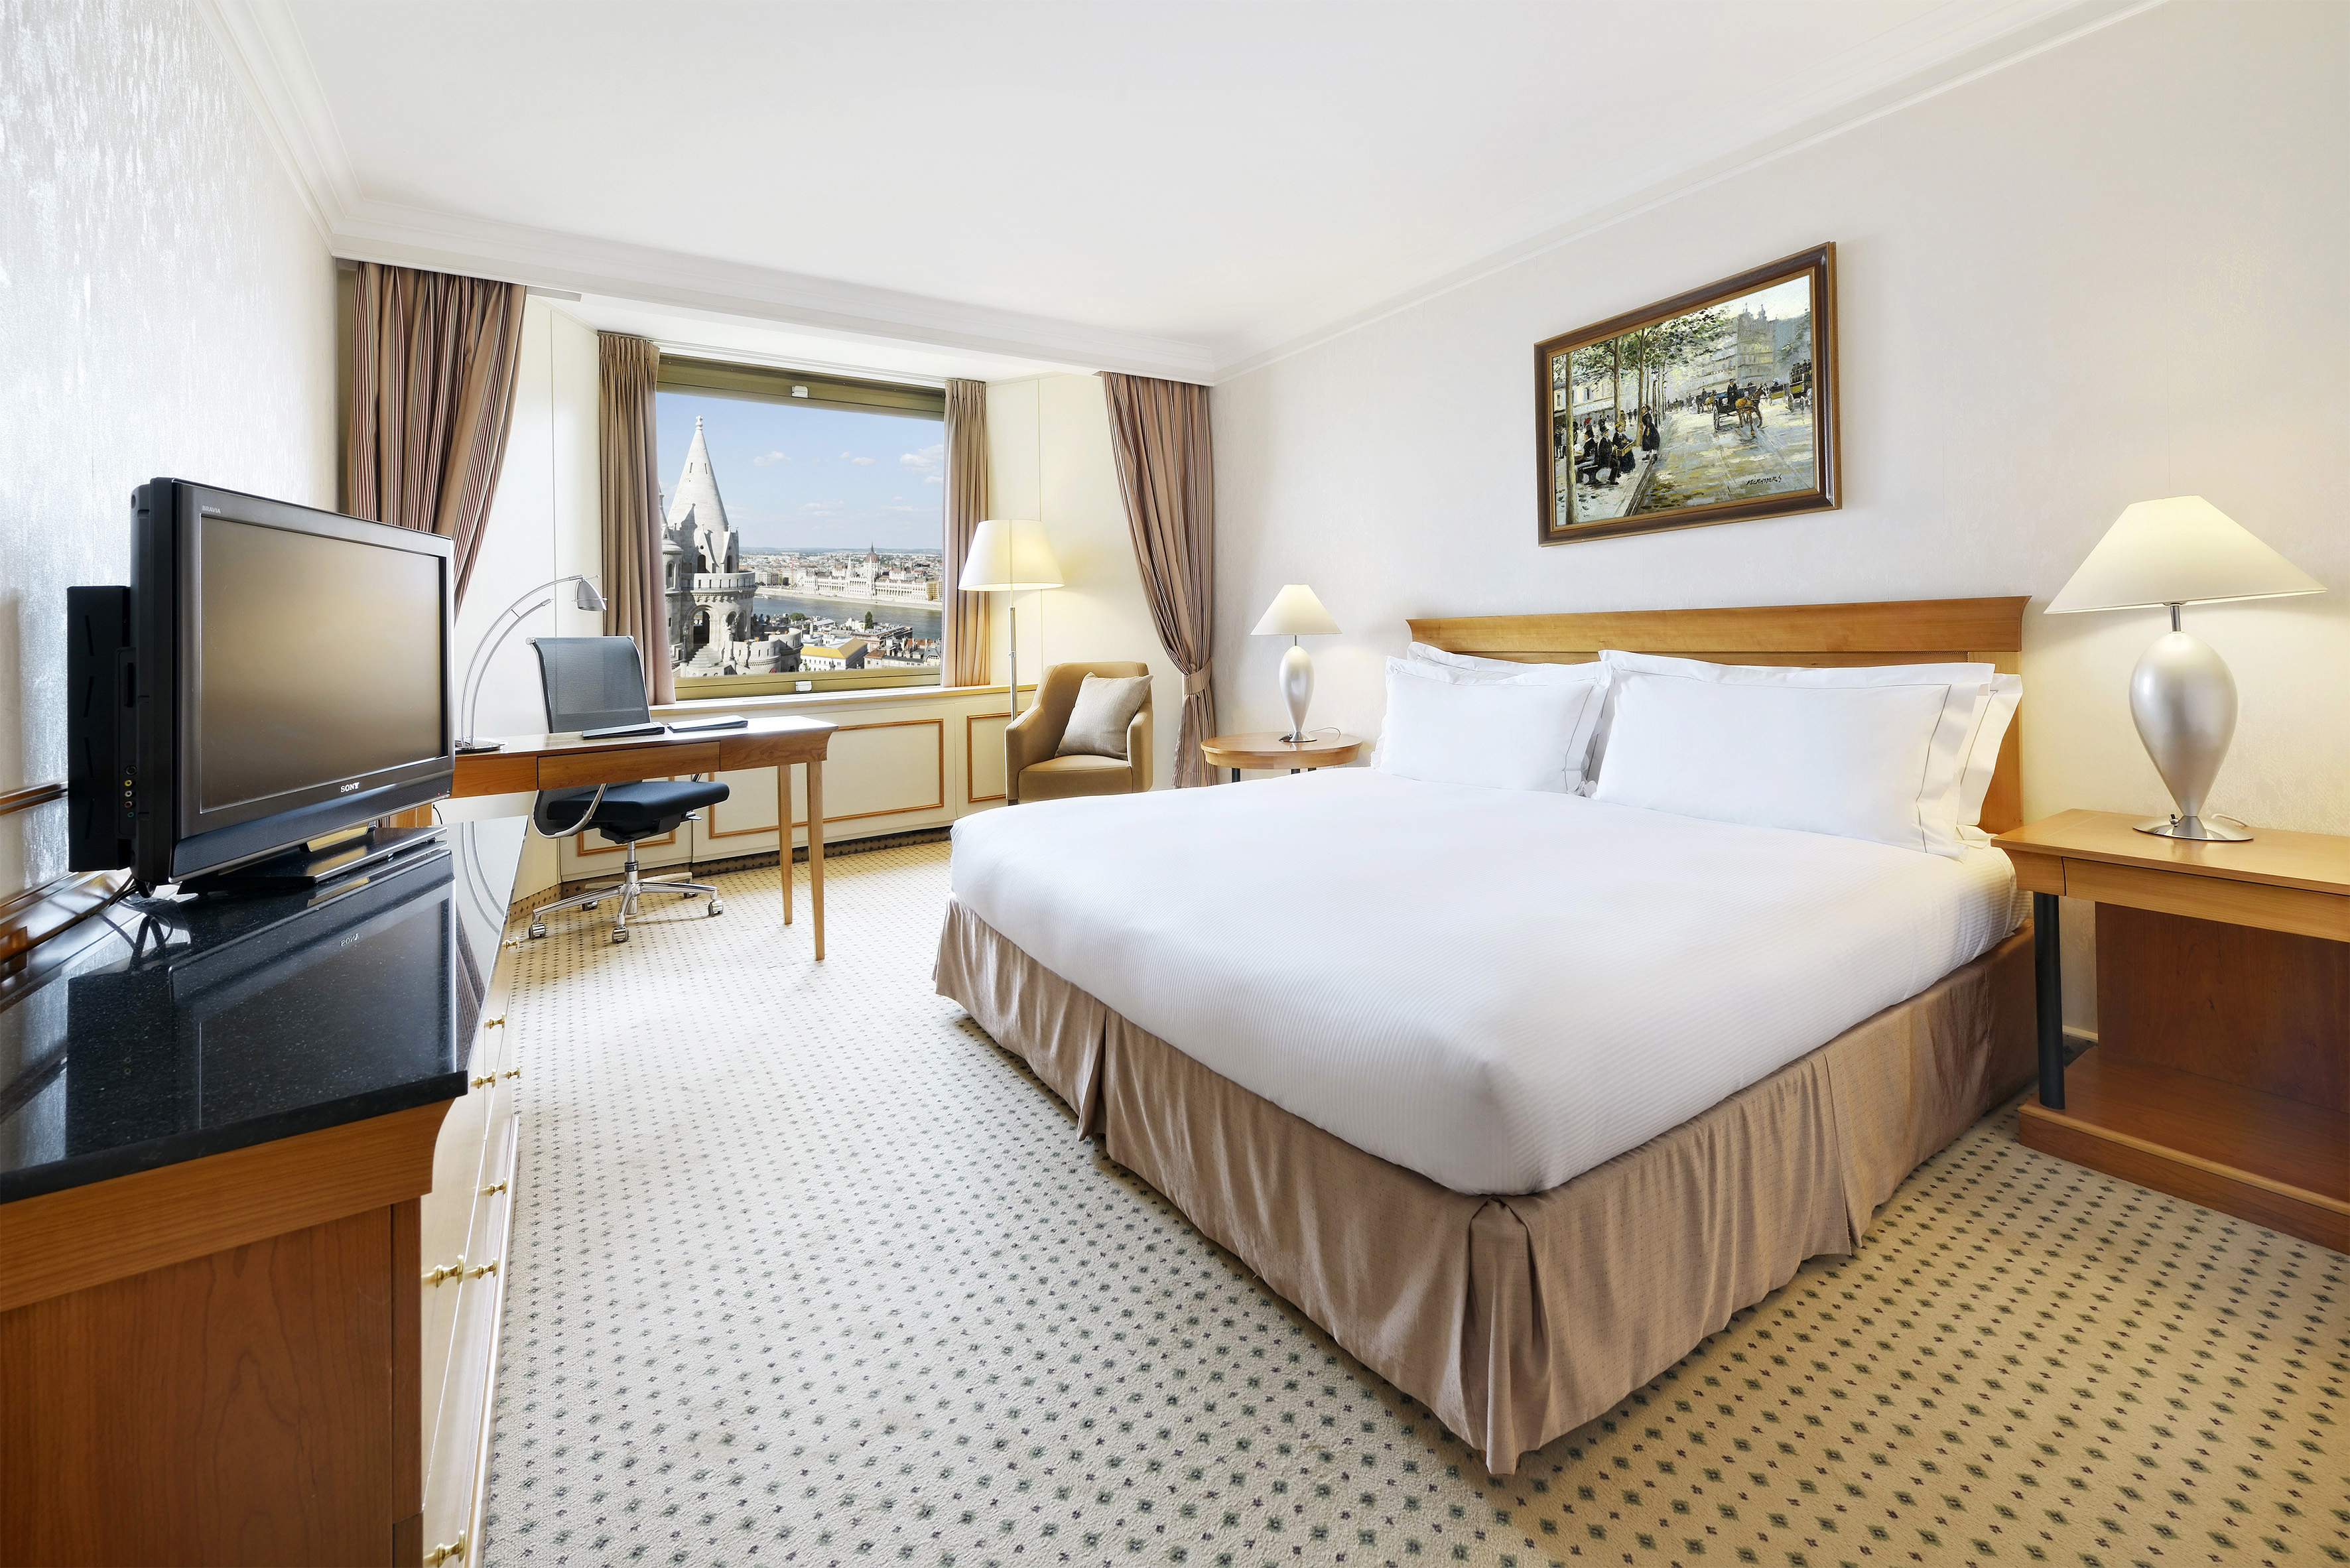 Hilton Budapest King Room Danube view